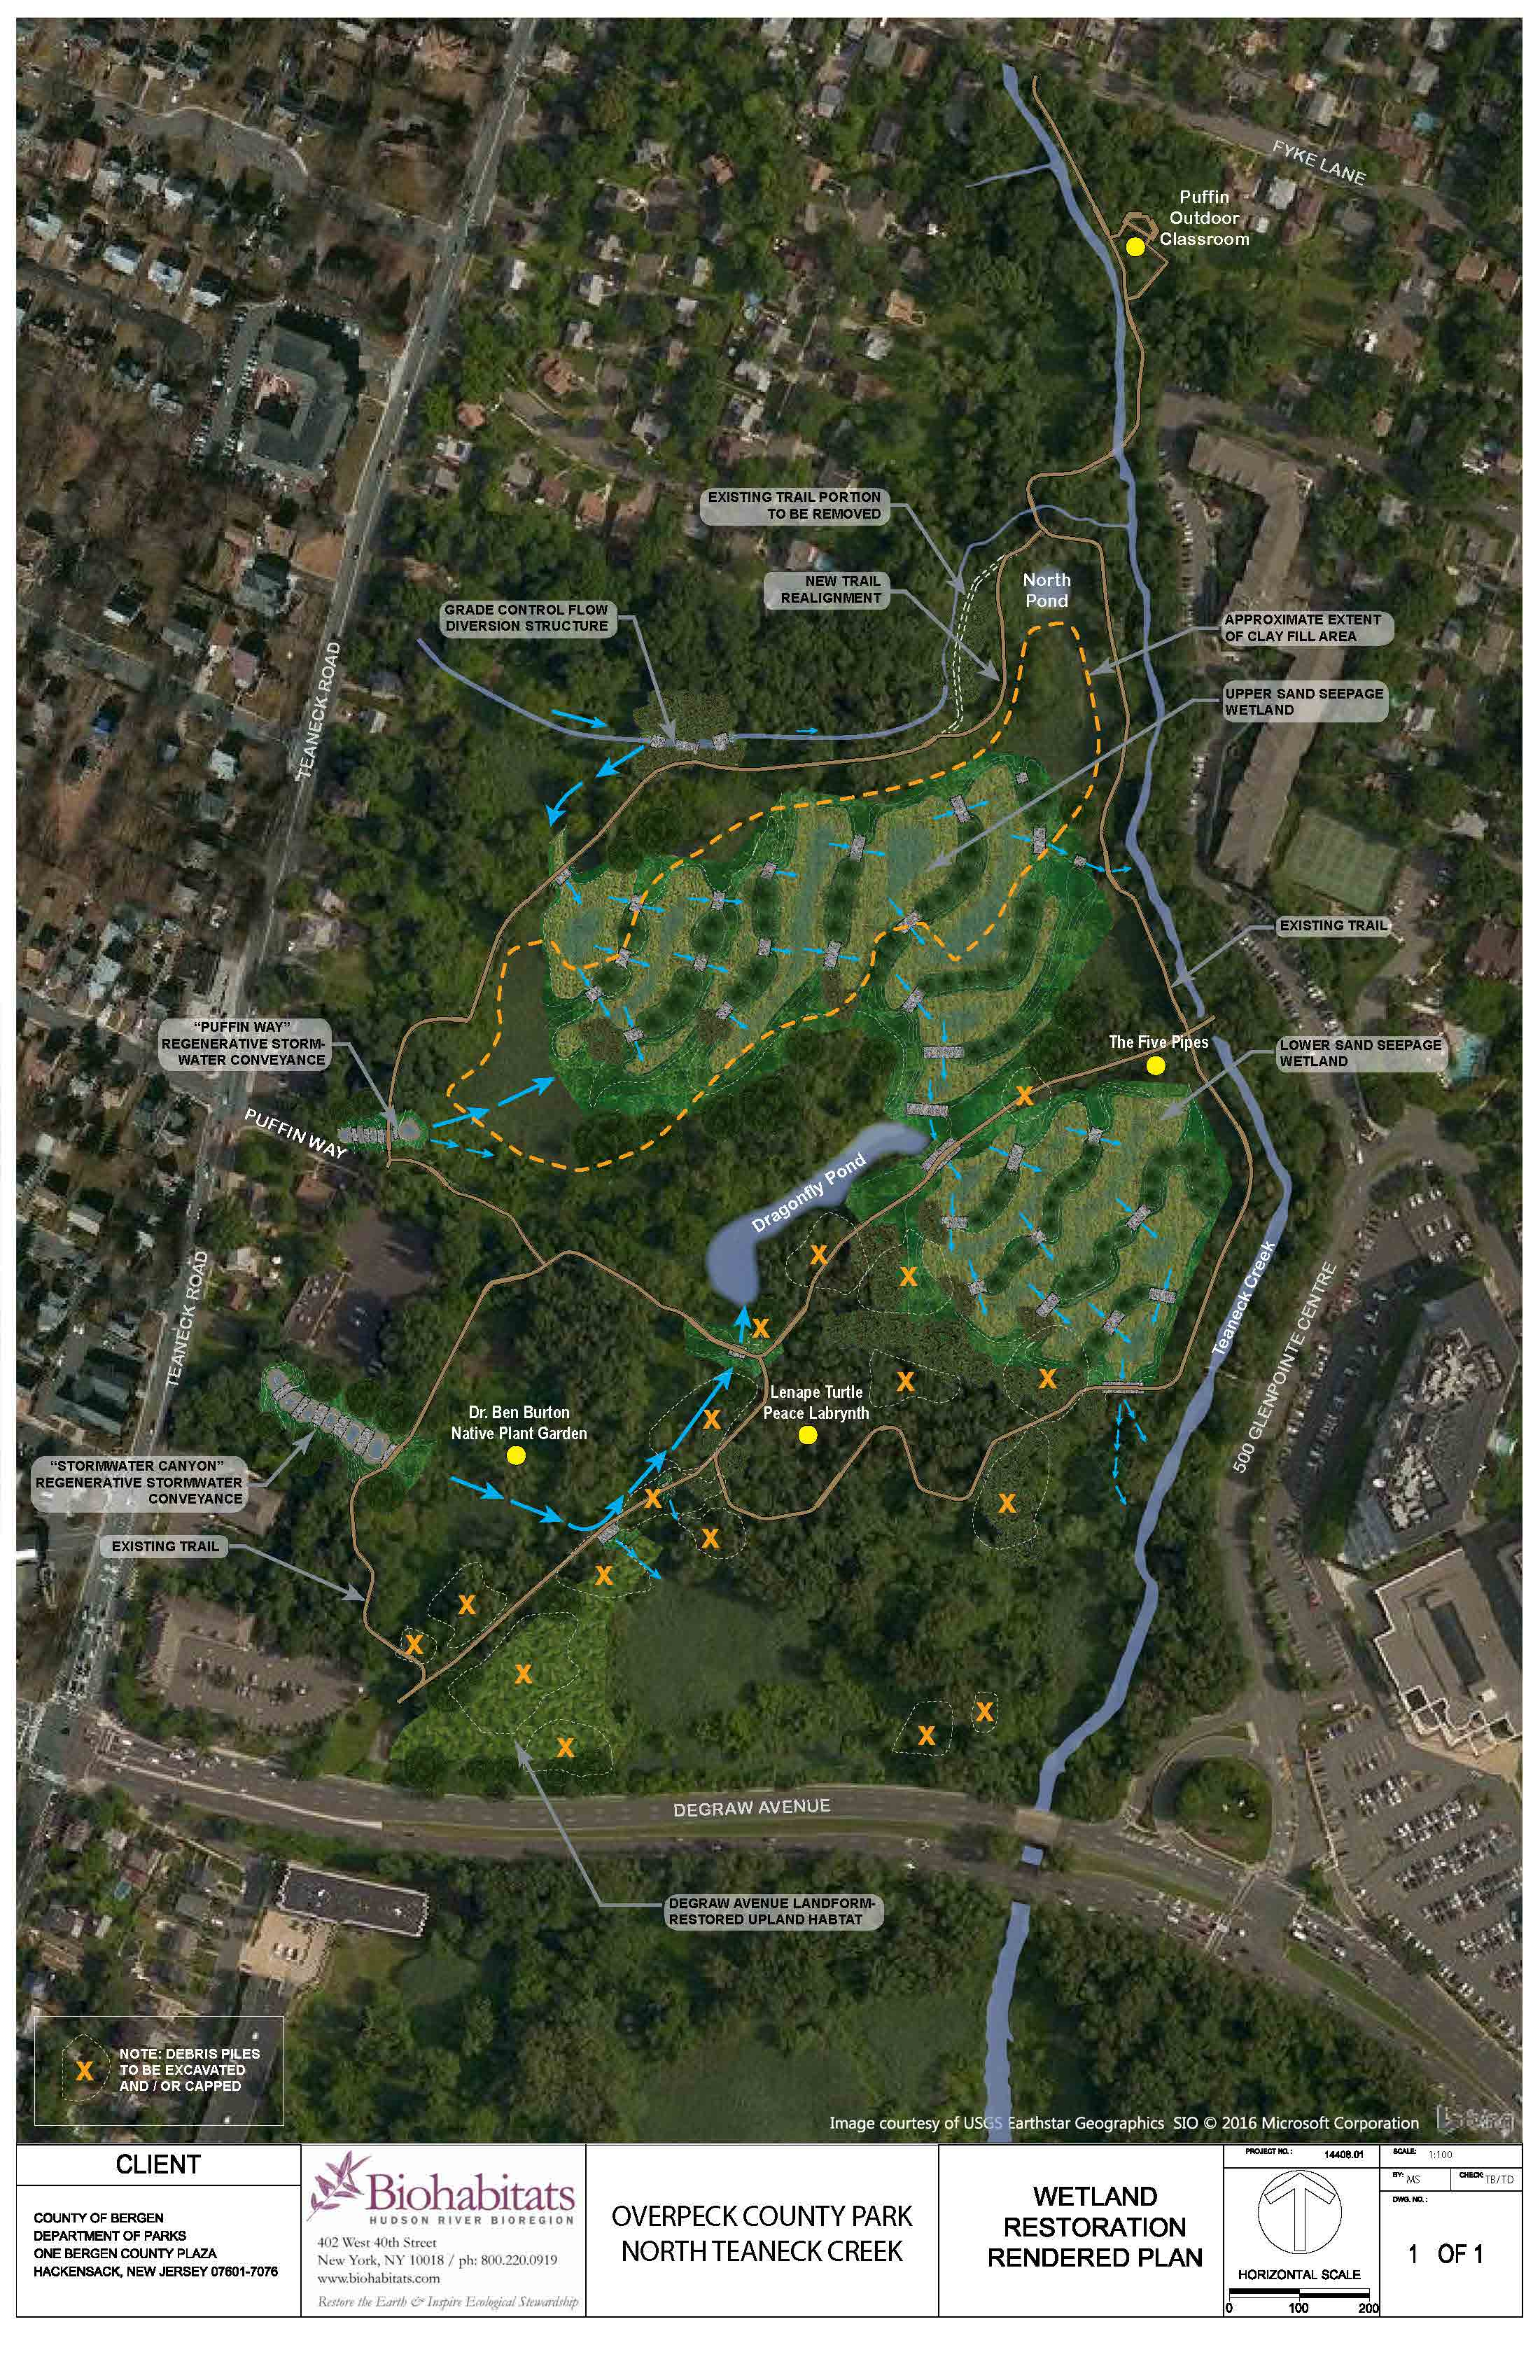 Teaneck Creek Park Restoration Plan overall plan view 08 26 2020